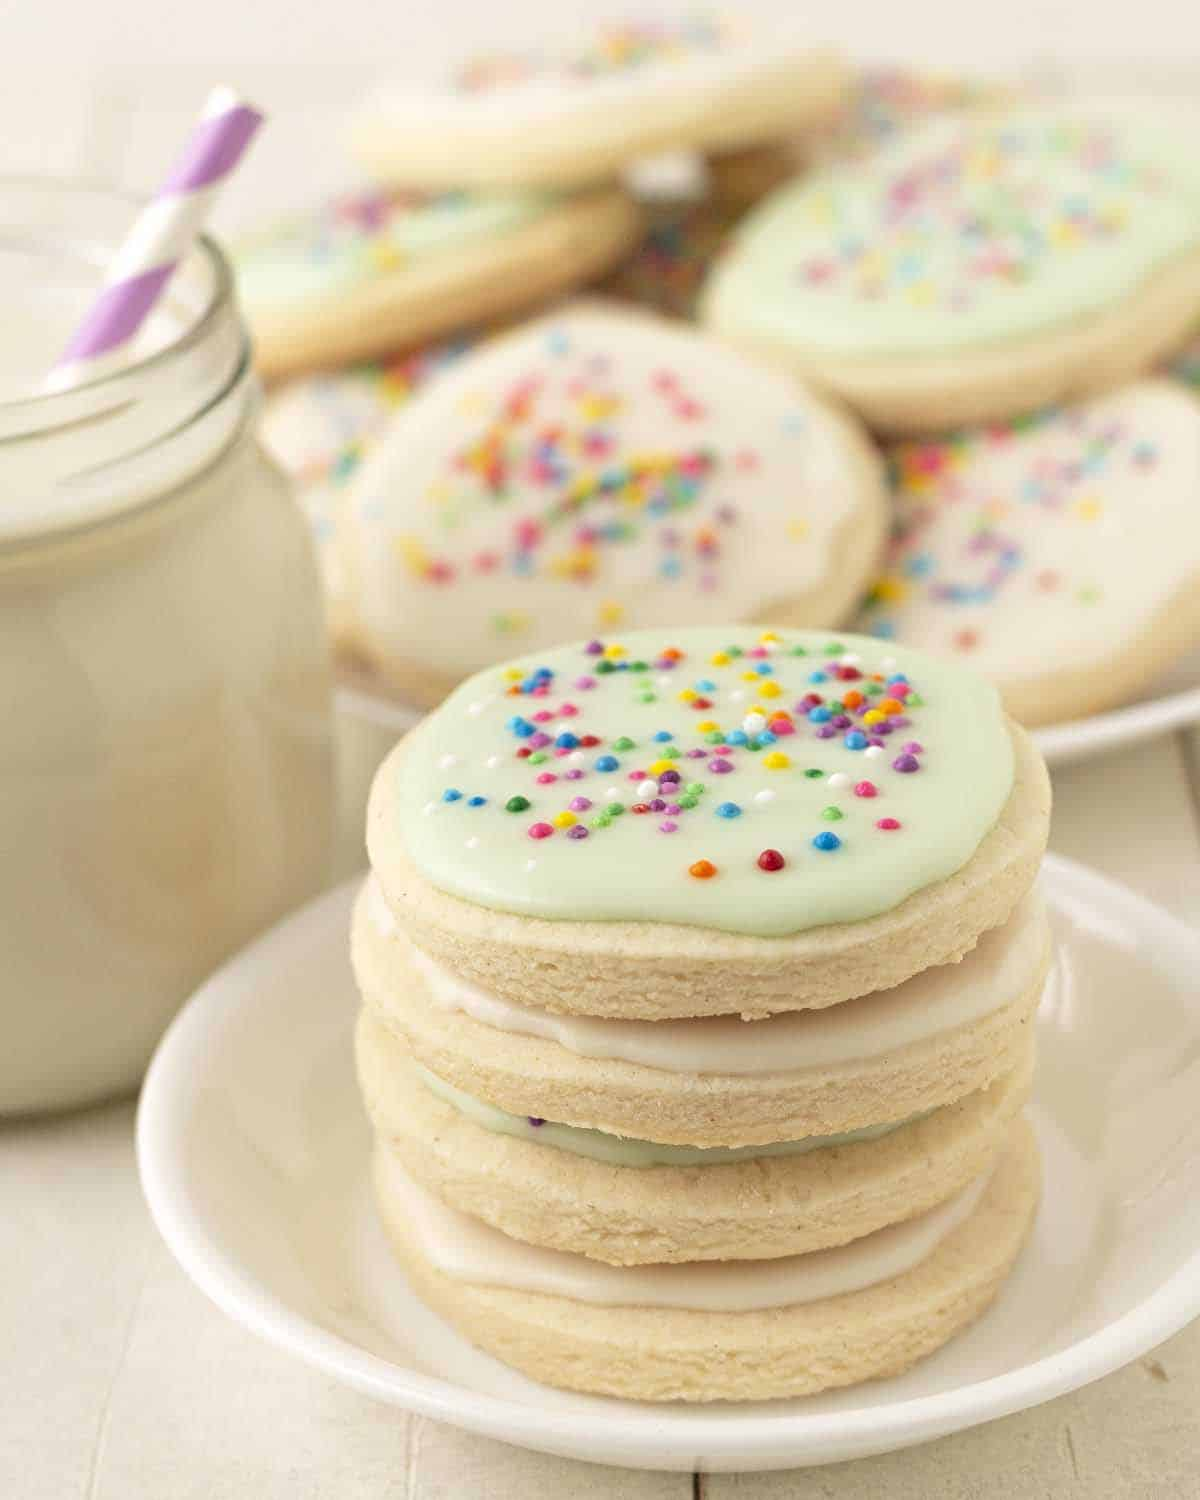 A stack of four vegan gluten free sugar cookies on a small white plate a glass of milk and more cookies sits behind.